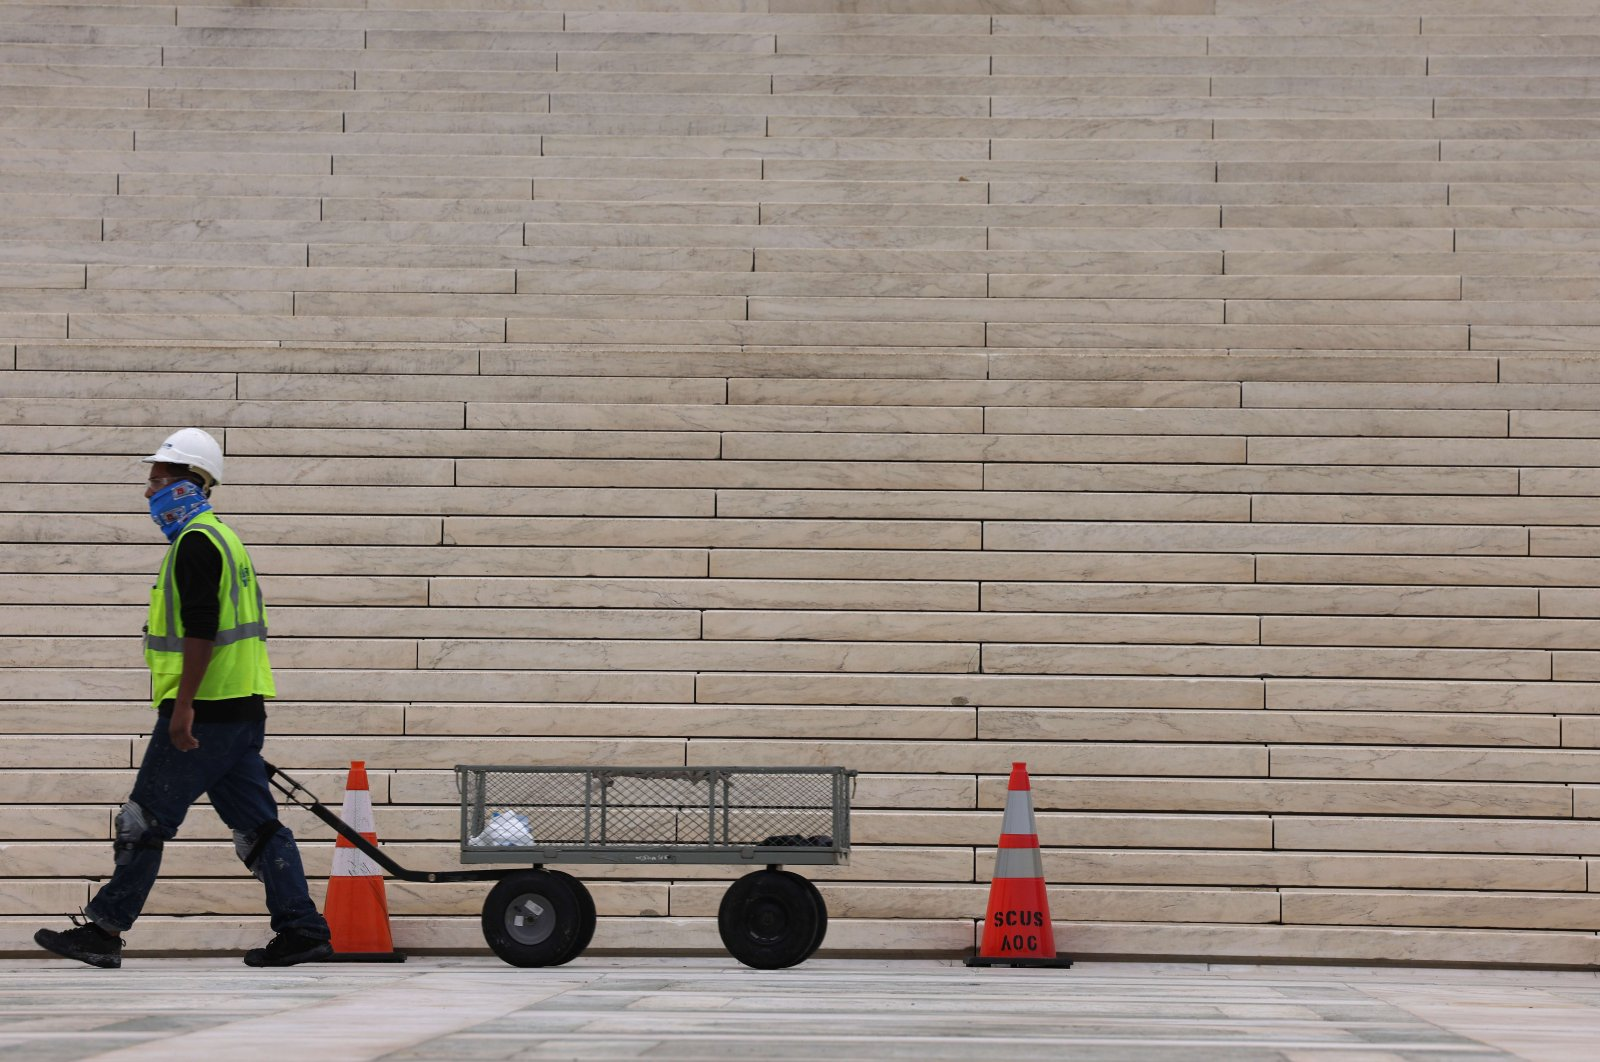 A worker walks past cones set up in front of the U.S. Supreme Court building, Washington, D.C., U.S. May 24, 2021. (AFP Photo)